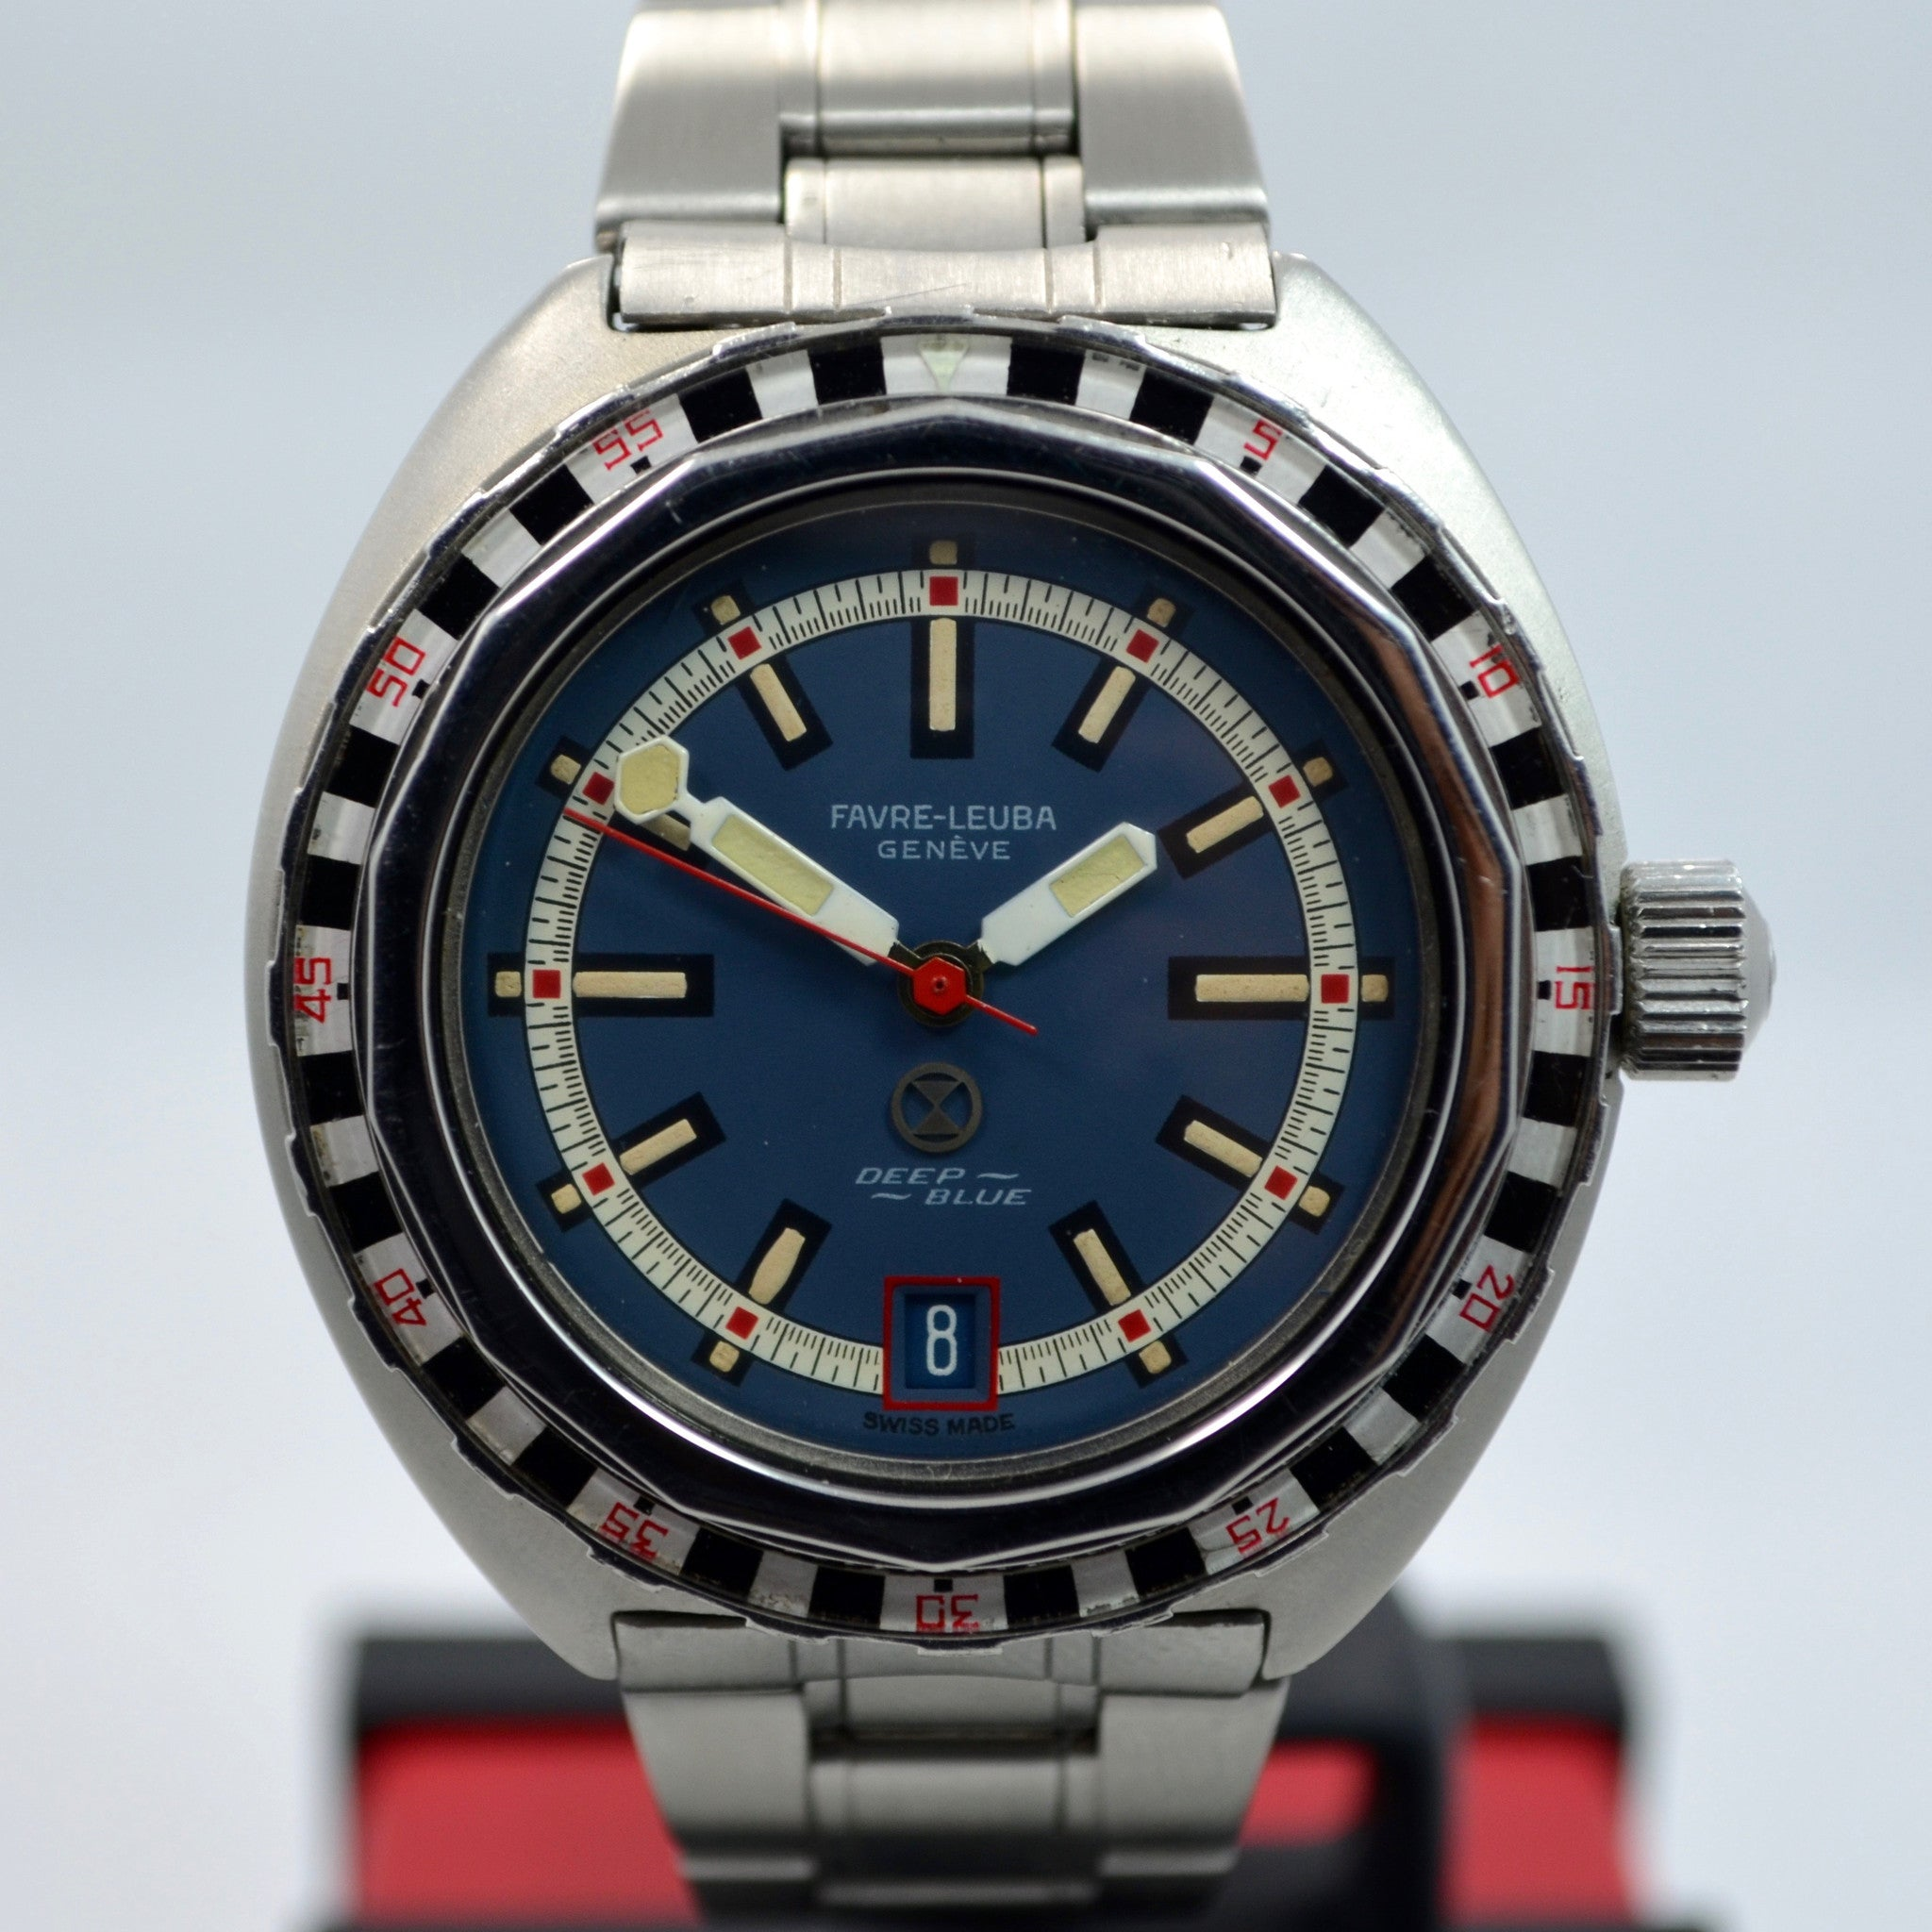 Vintage Favre Leuba Deep Blue 59863 Roulette Stainless Steel Divers Wristwatch - Hashtag Watch Company